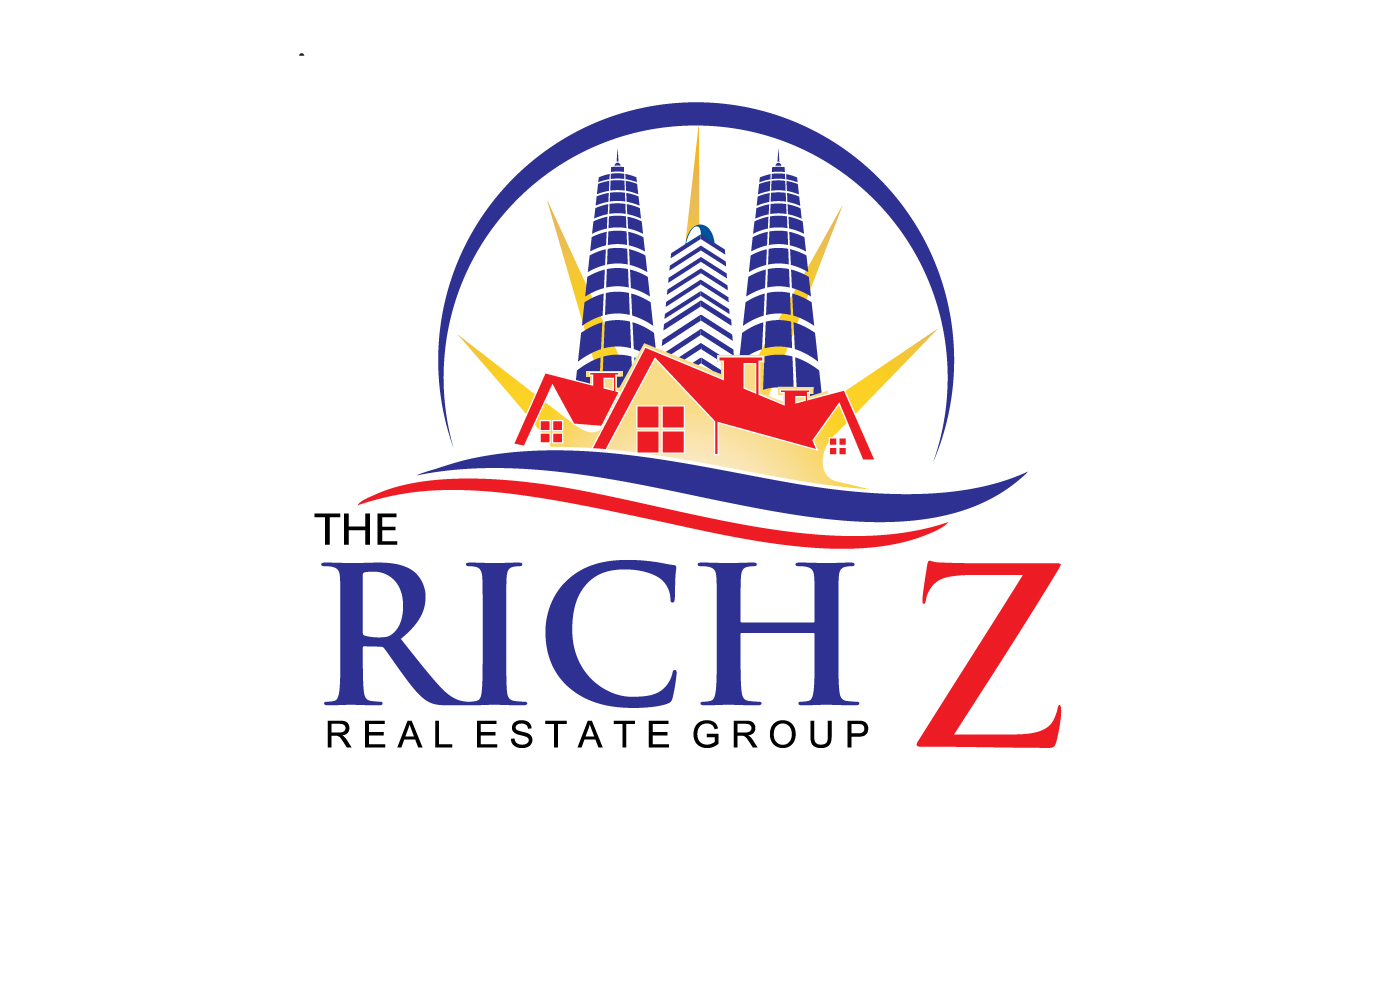 Logo Design by find_finder - Entry No. 75 in the Logo Design Contest The Rich Z. Real Estate Group Logo Design.